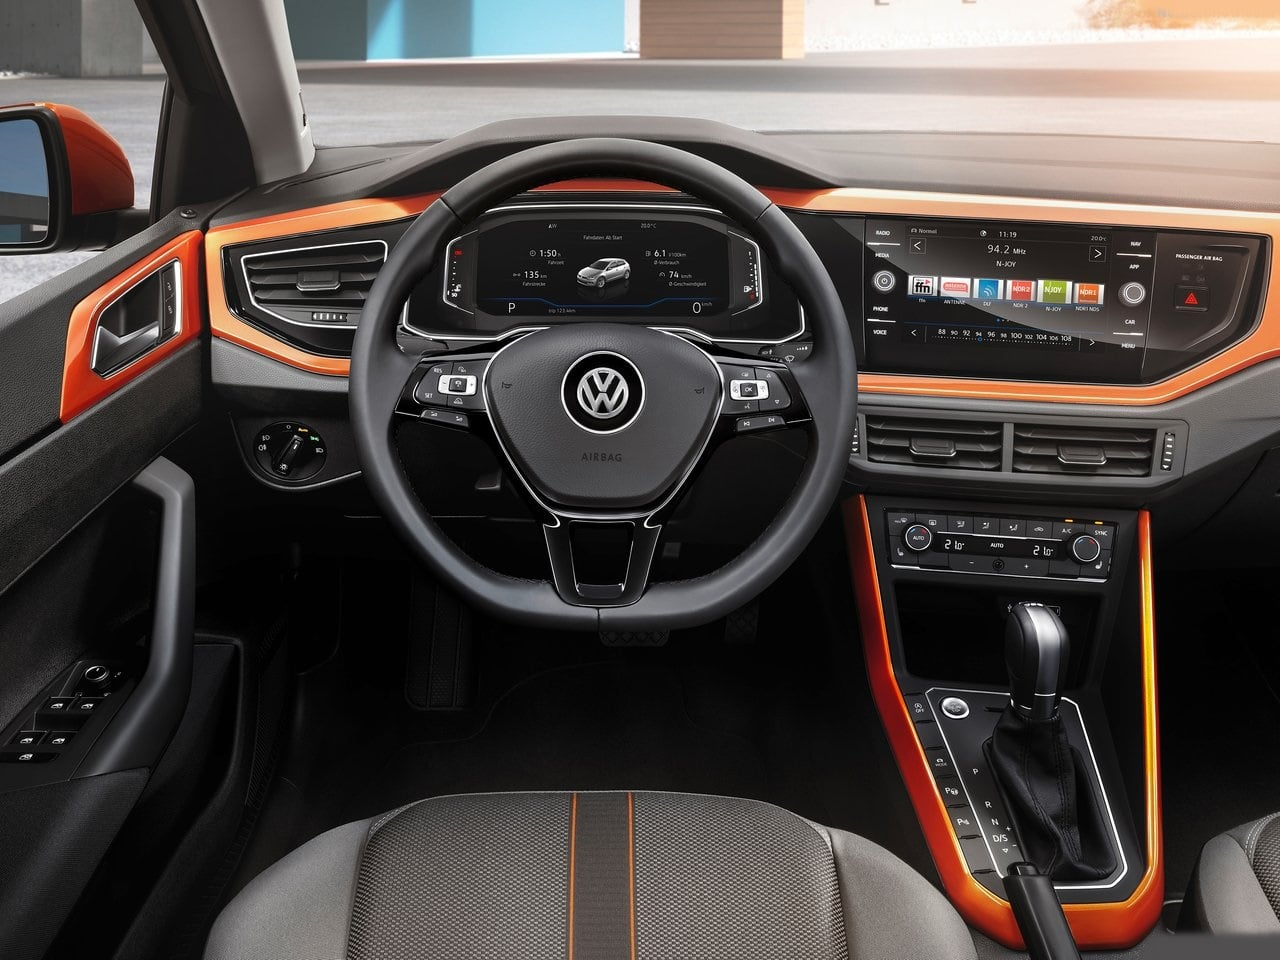 new 2018 volkswagen polo india images interior dashboard carblogindia. Black Bedroom Furniture Sets. Home Design Ideas